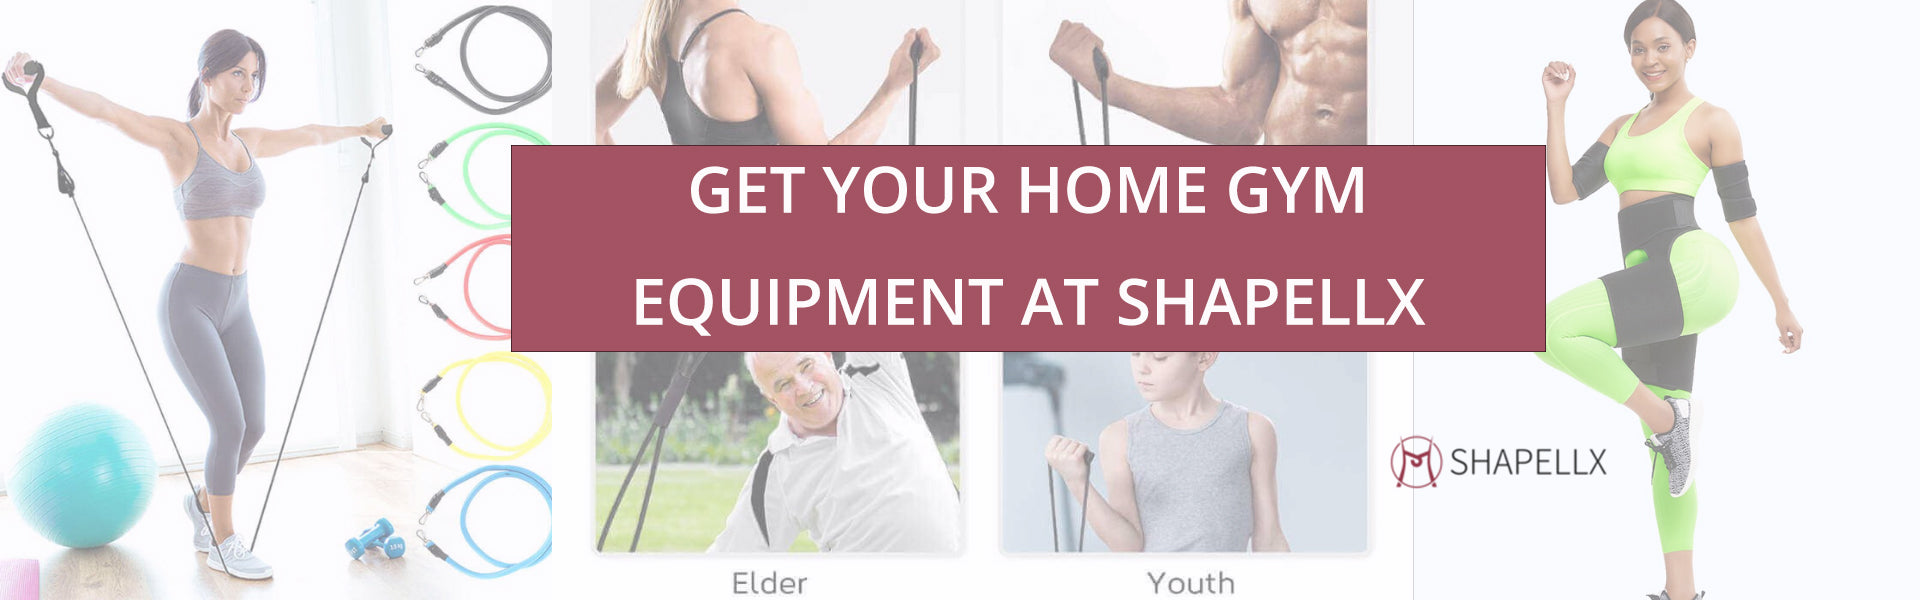 Get Your Home Gym Equipments at Shapellx